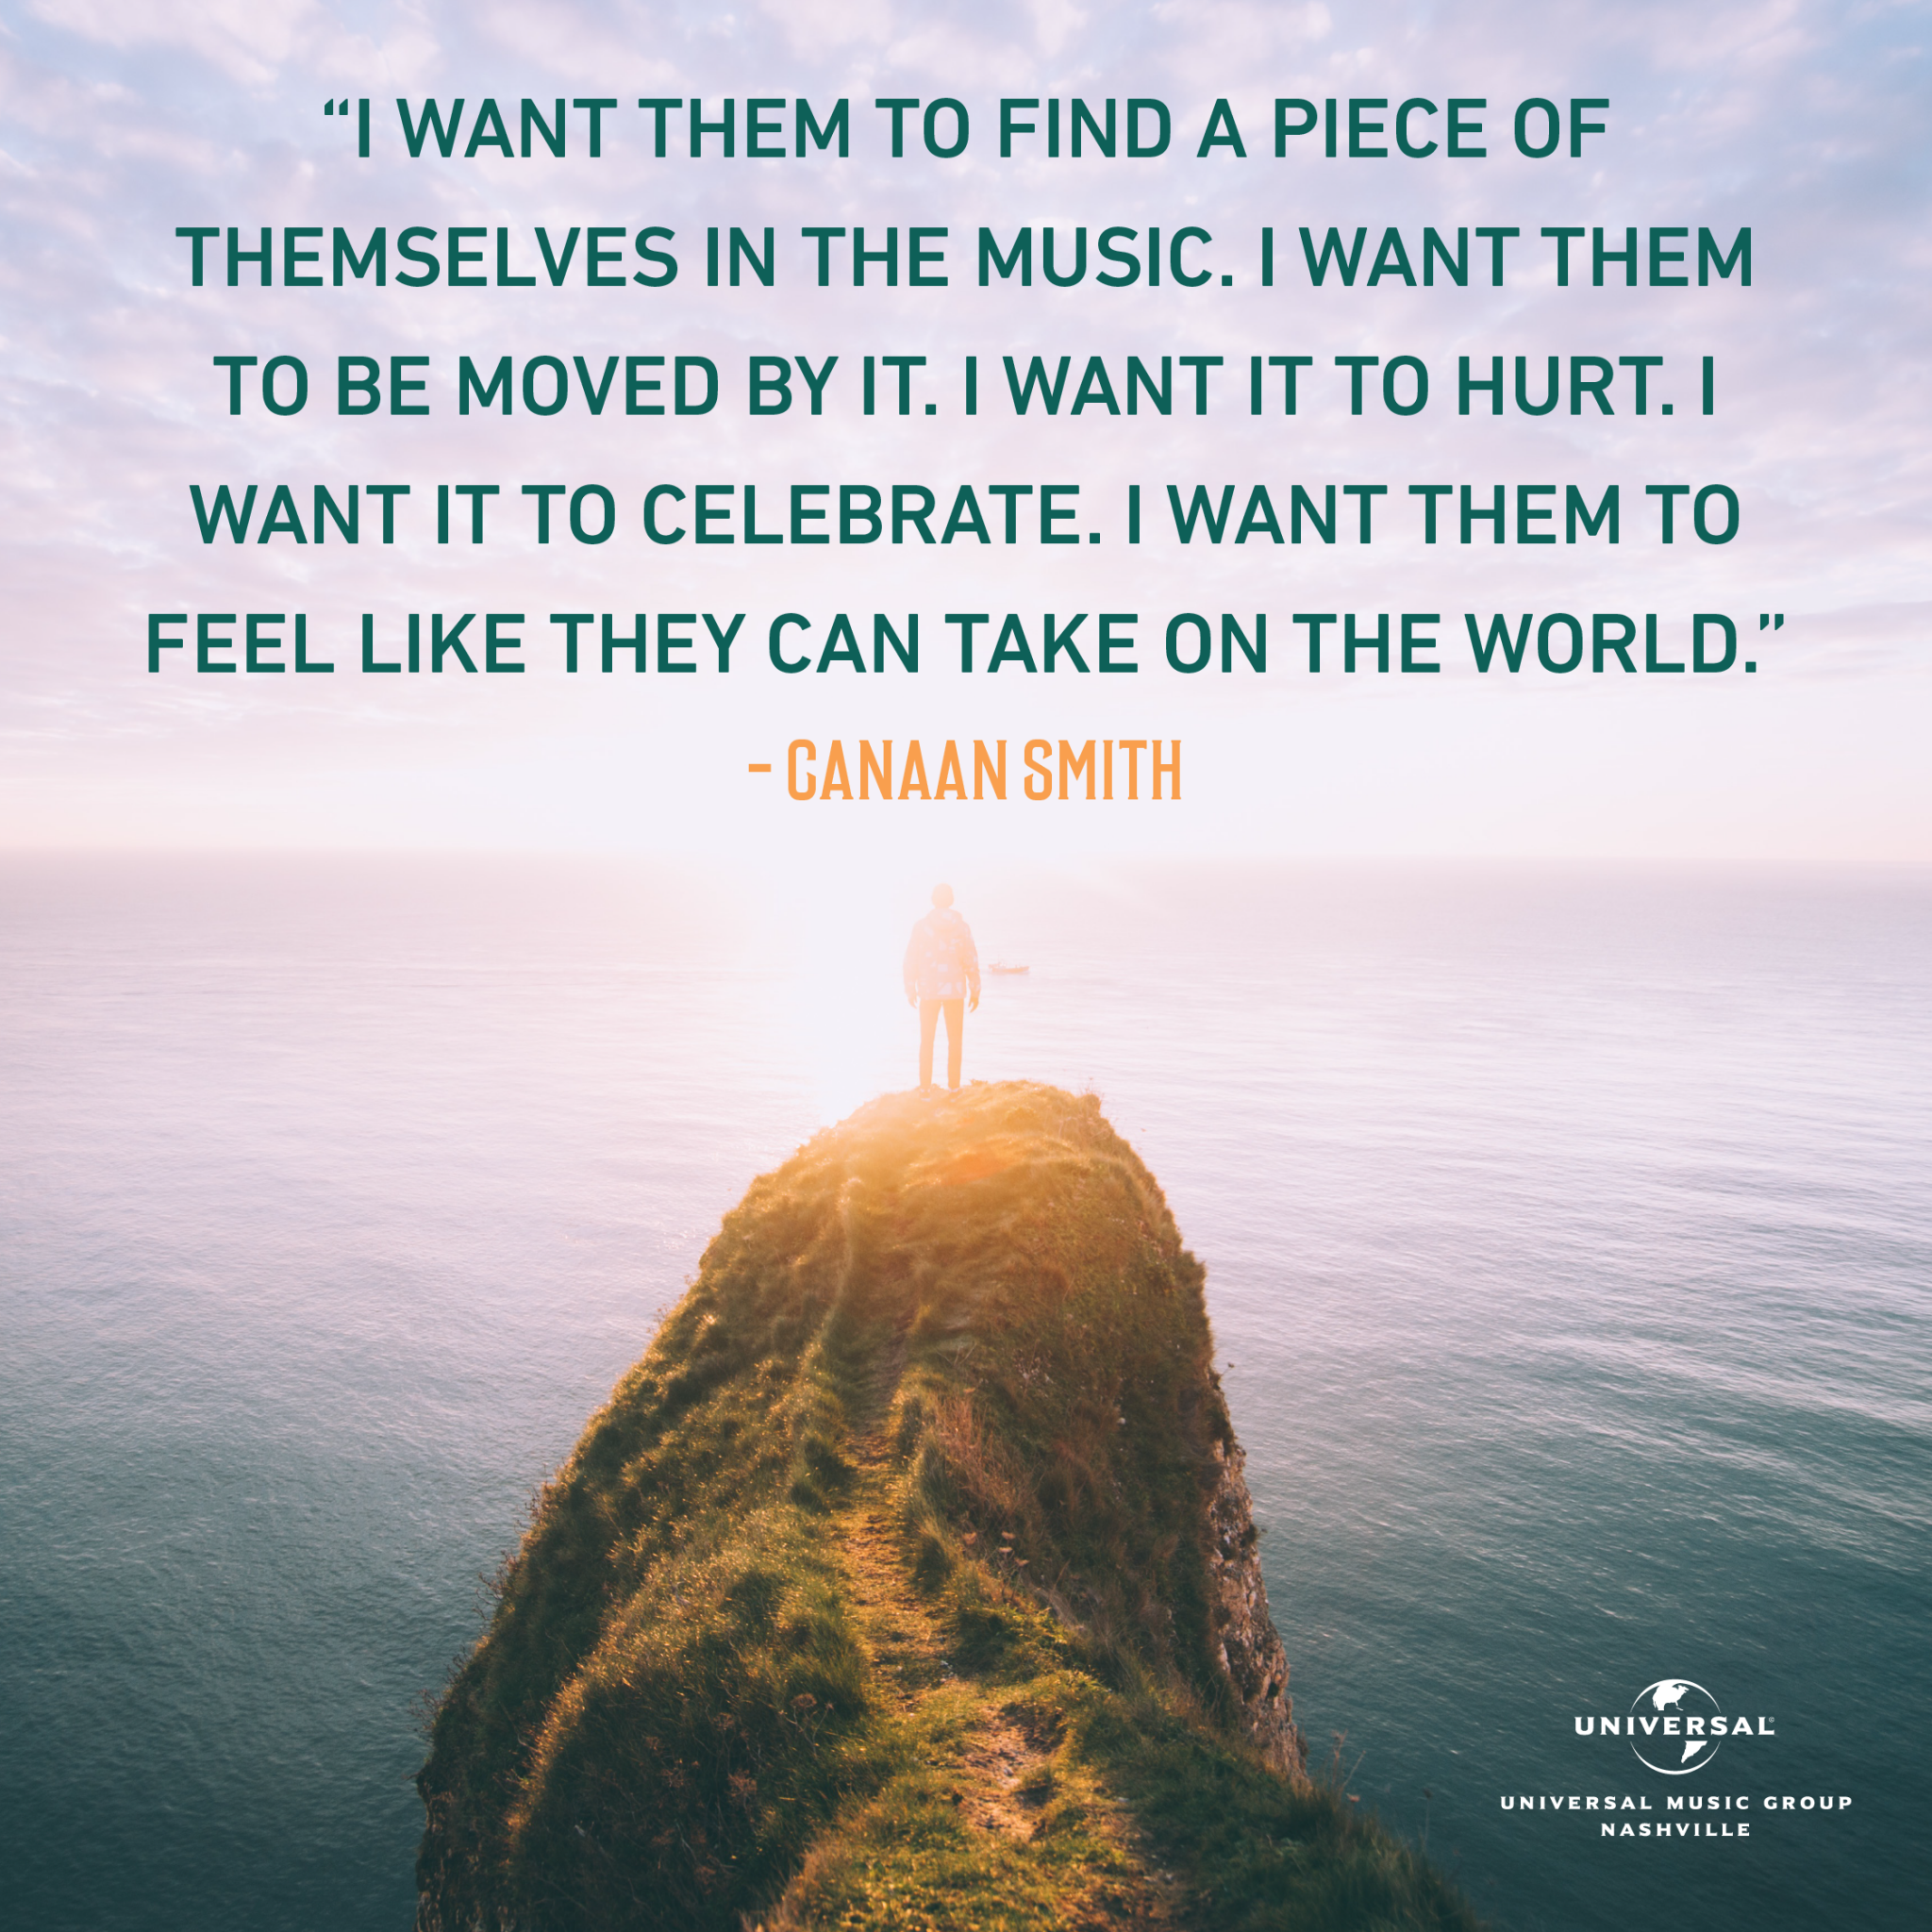 """""""I want them to find a piece of themselves in the music. I want them to be moved by it. I want it to hurt. I want it to celebrate. I want them to feel like they can take on the world."""" Canaan Smith"""